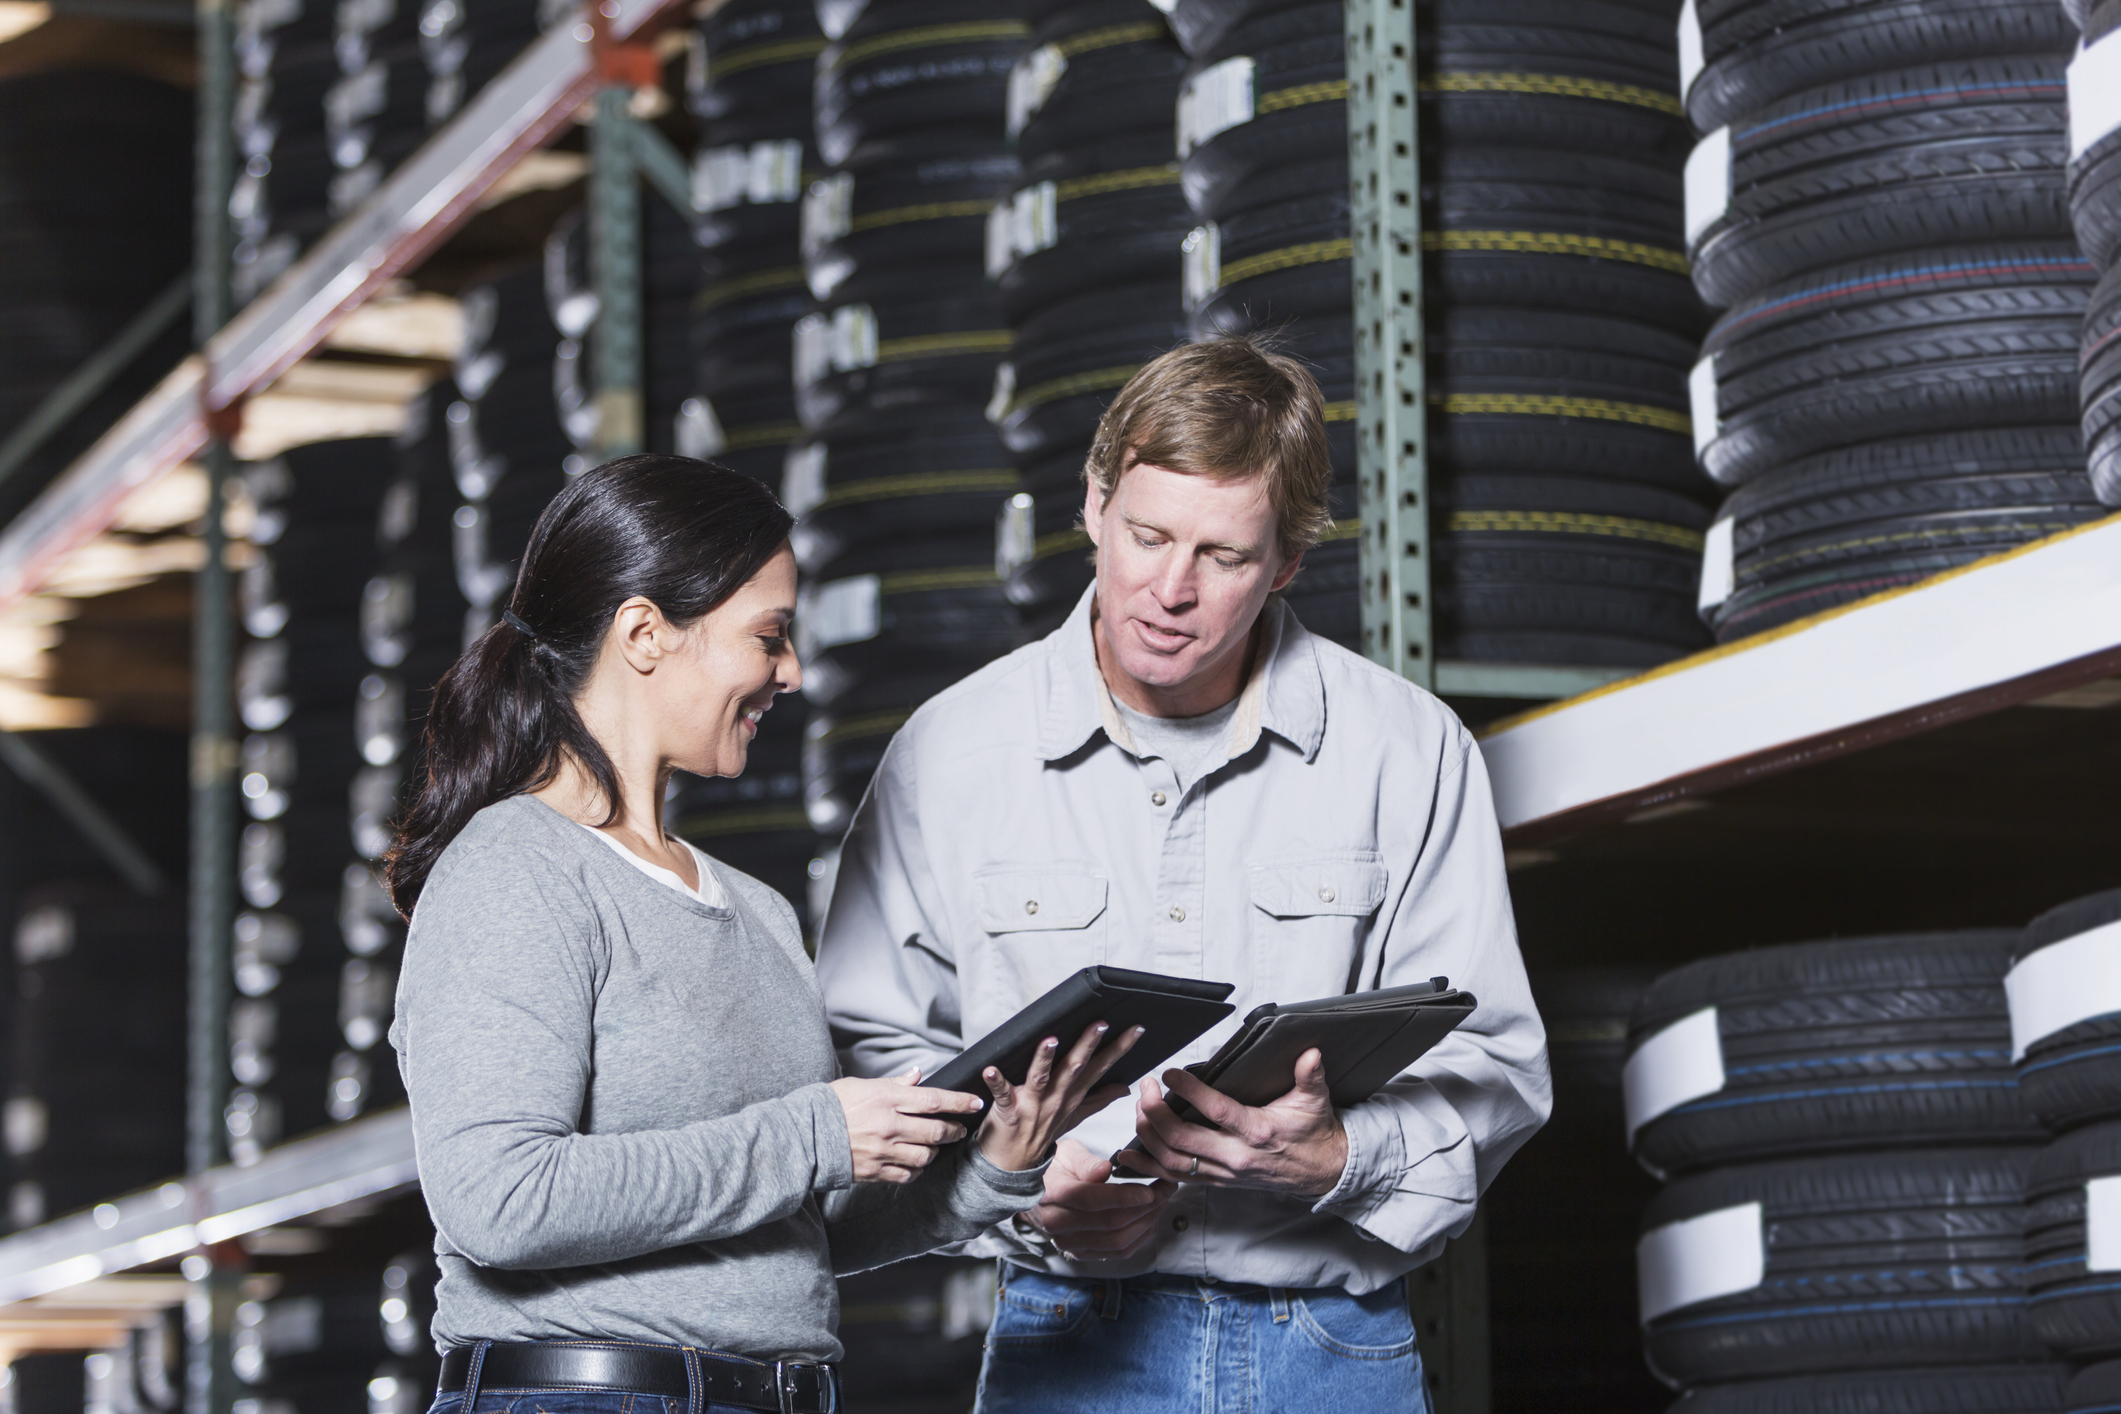 Workers in warehouse with tires counterpoint retail pos